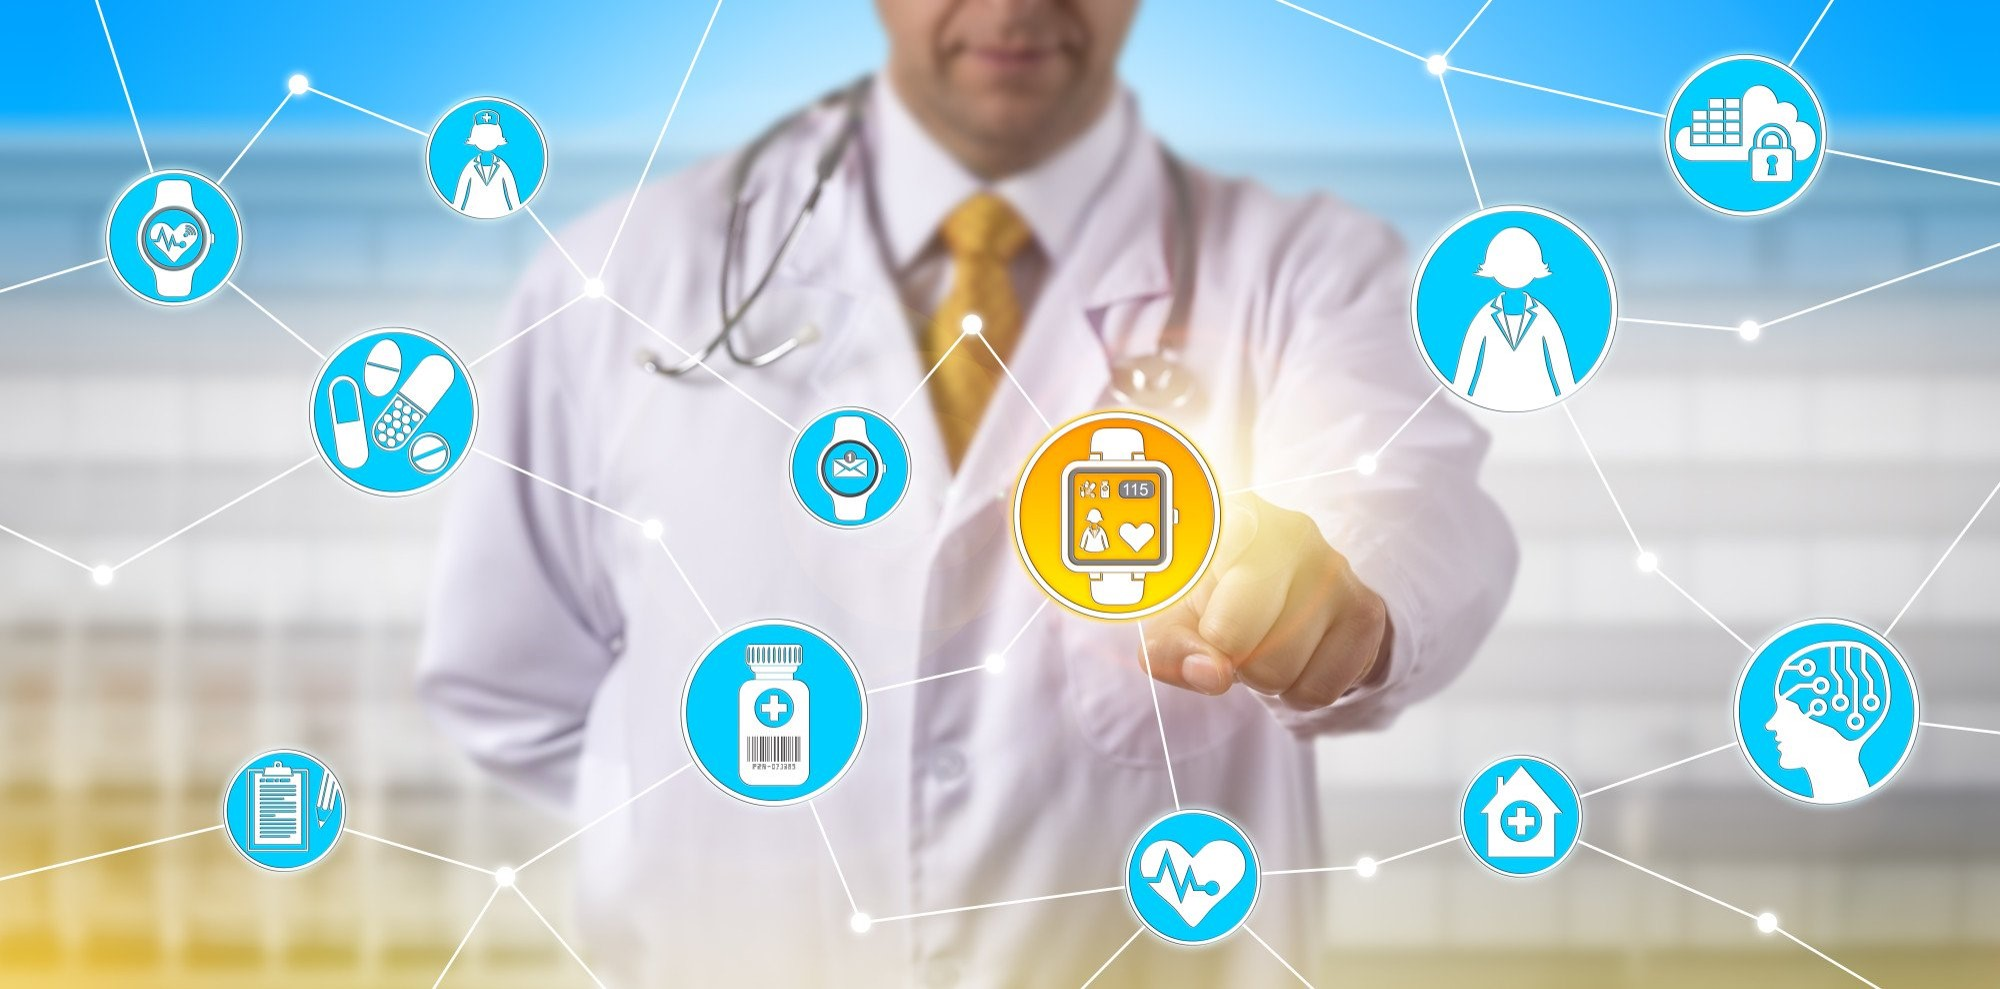 Remote Patient Monitoring in Healthcare: Five Exciting Trends to Watch